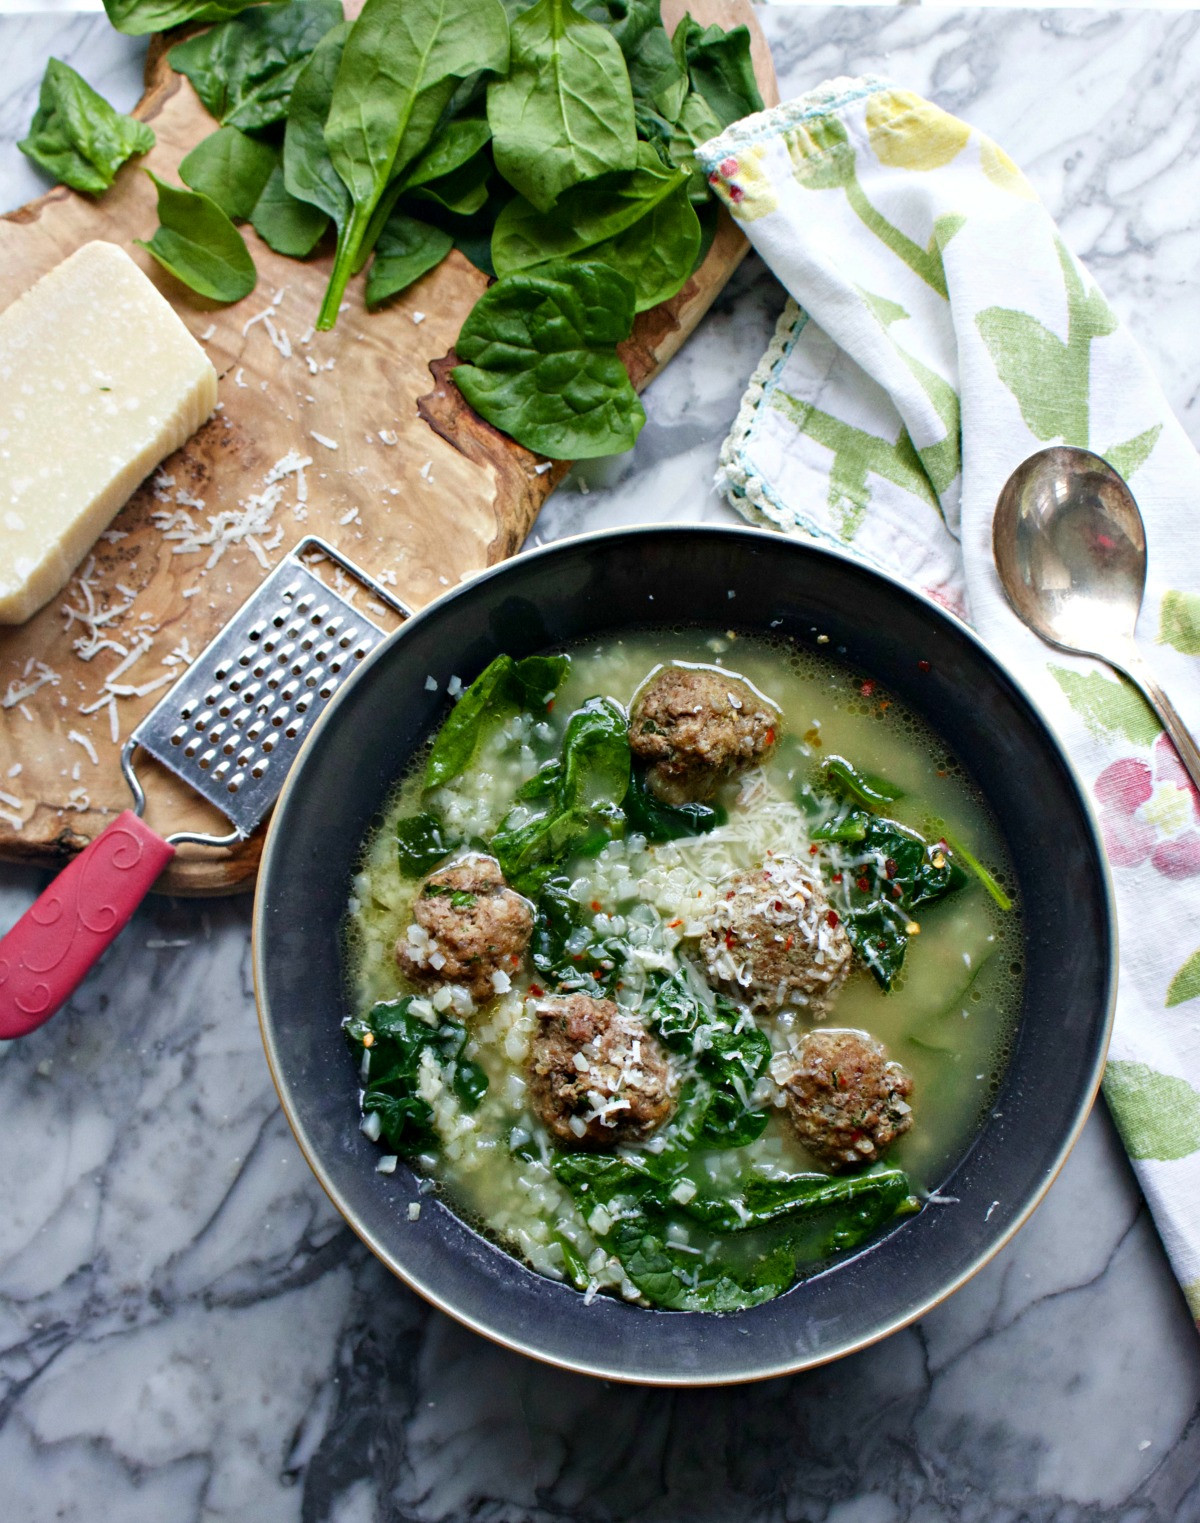 Italian Wedding Soup Recipes With Spinach  Italian Wedding Soup Keto Paleo Friendly Spinach Tiger